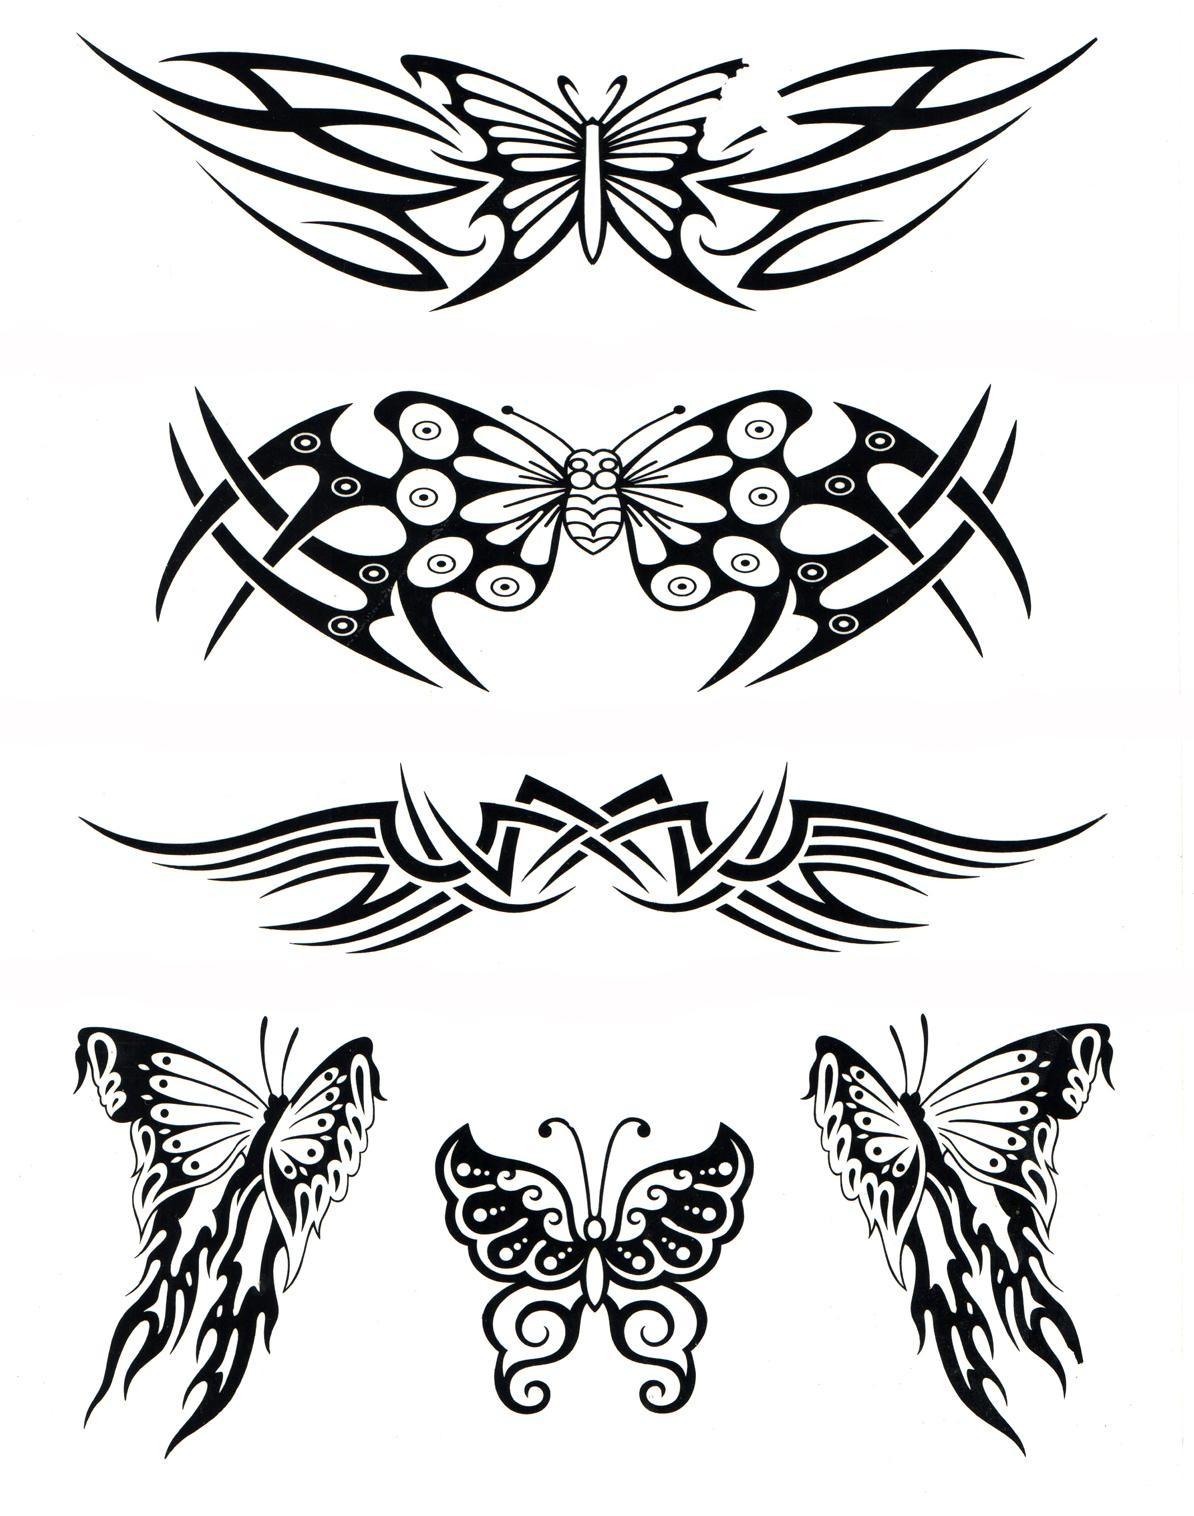 Water Transfer Temporary Tattoos (6 in 1) - 1